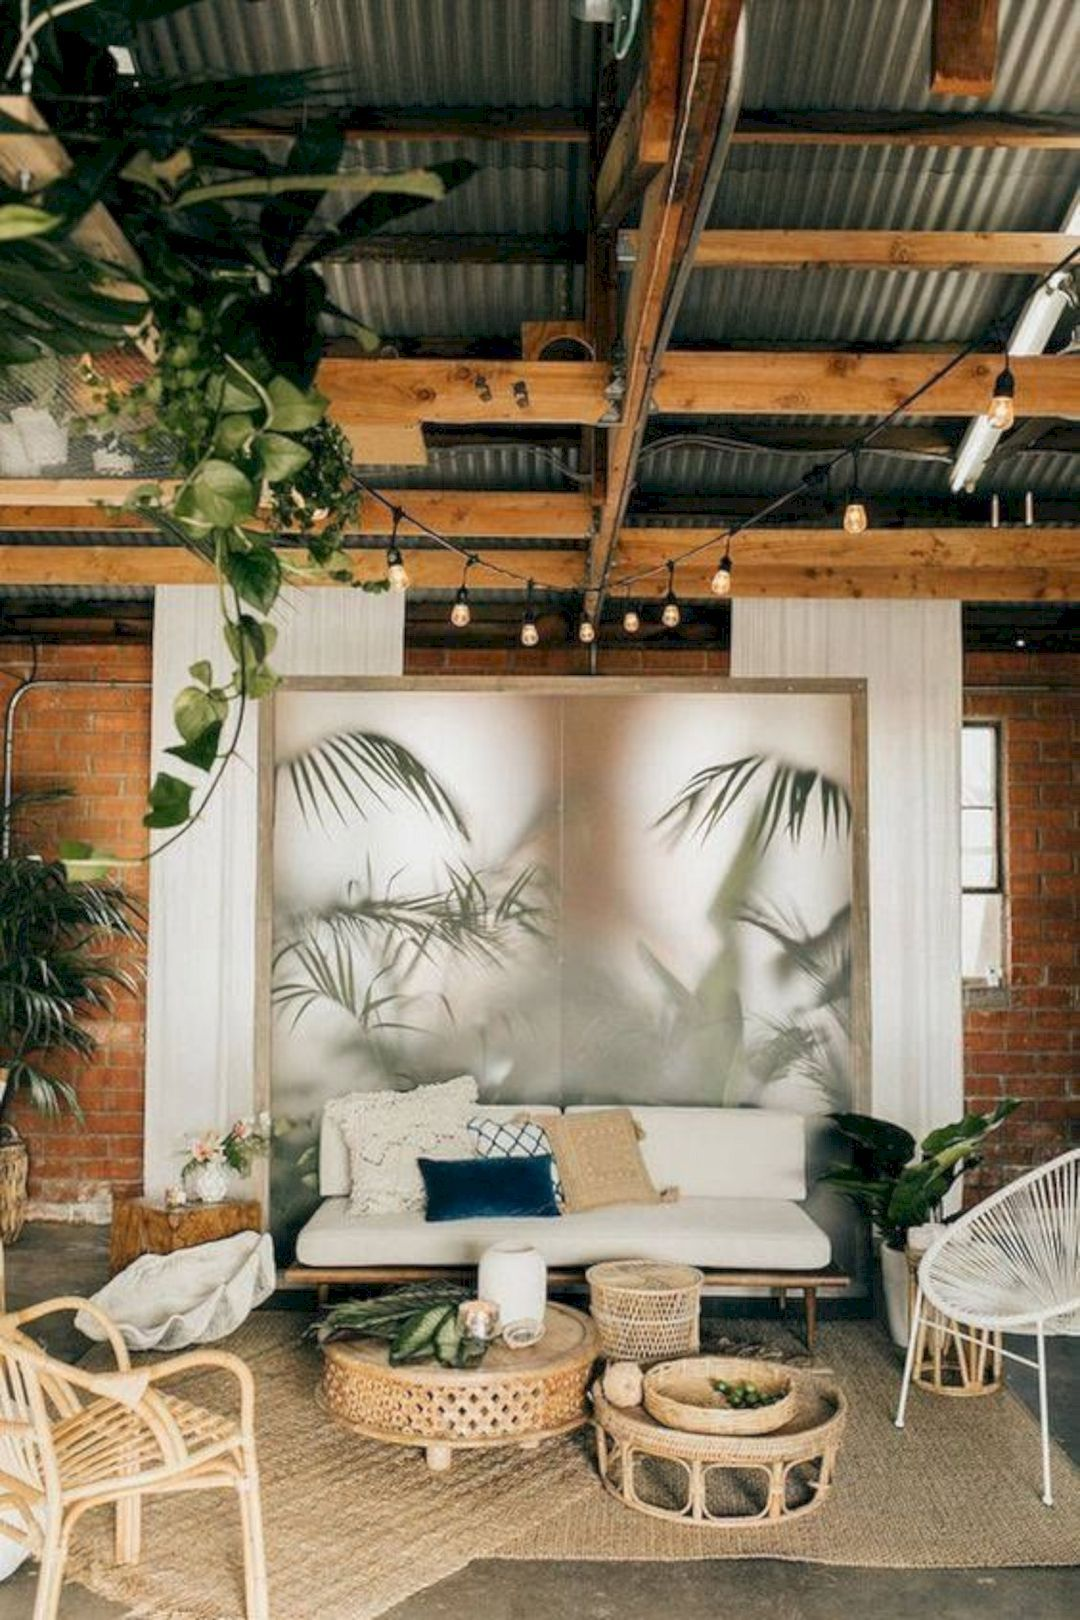 15 Tropical Room Decoration Ideas To Freshen Up Your Home Tropical Living Room Tropical Home Decor Tropical Interior